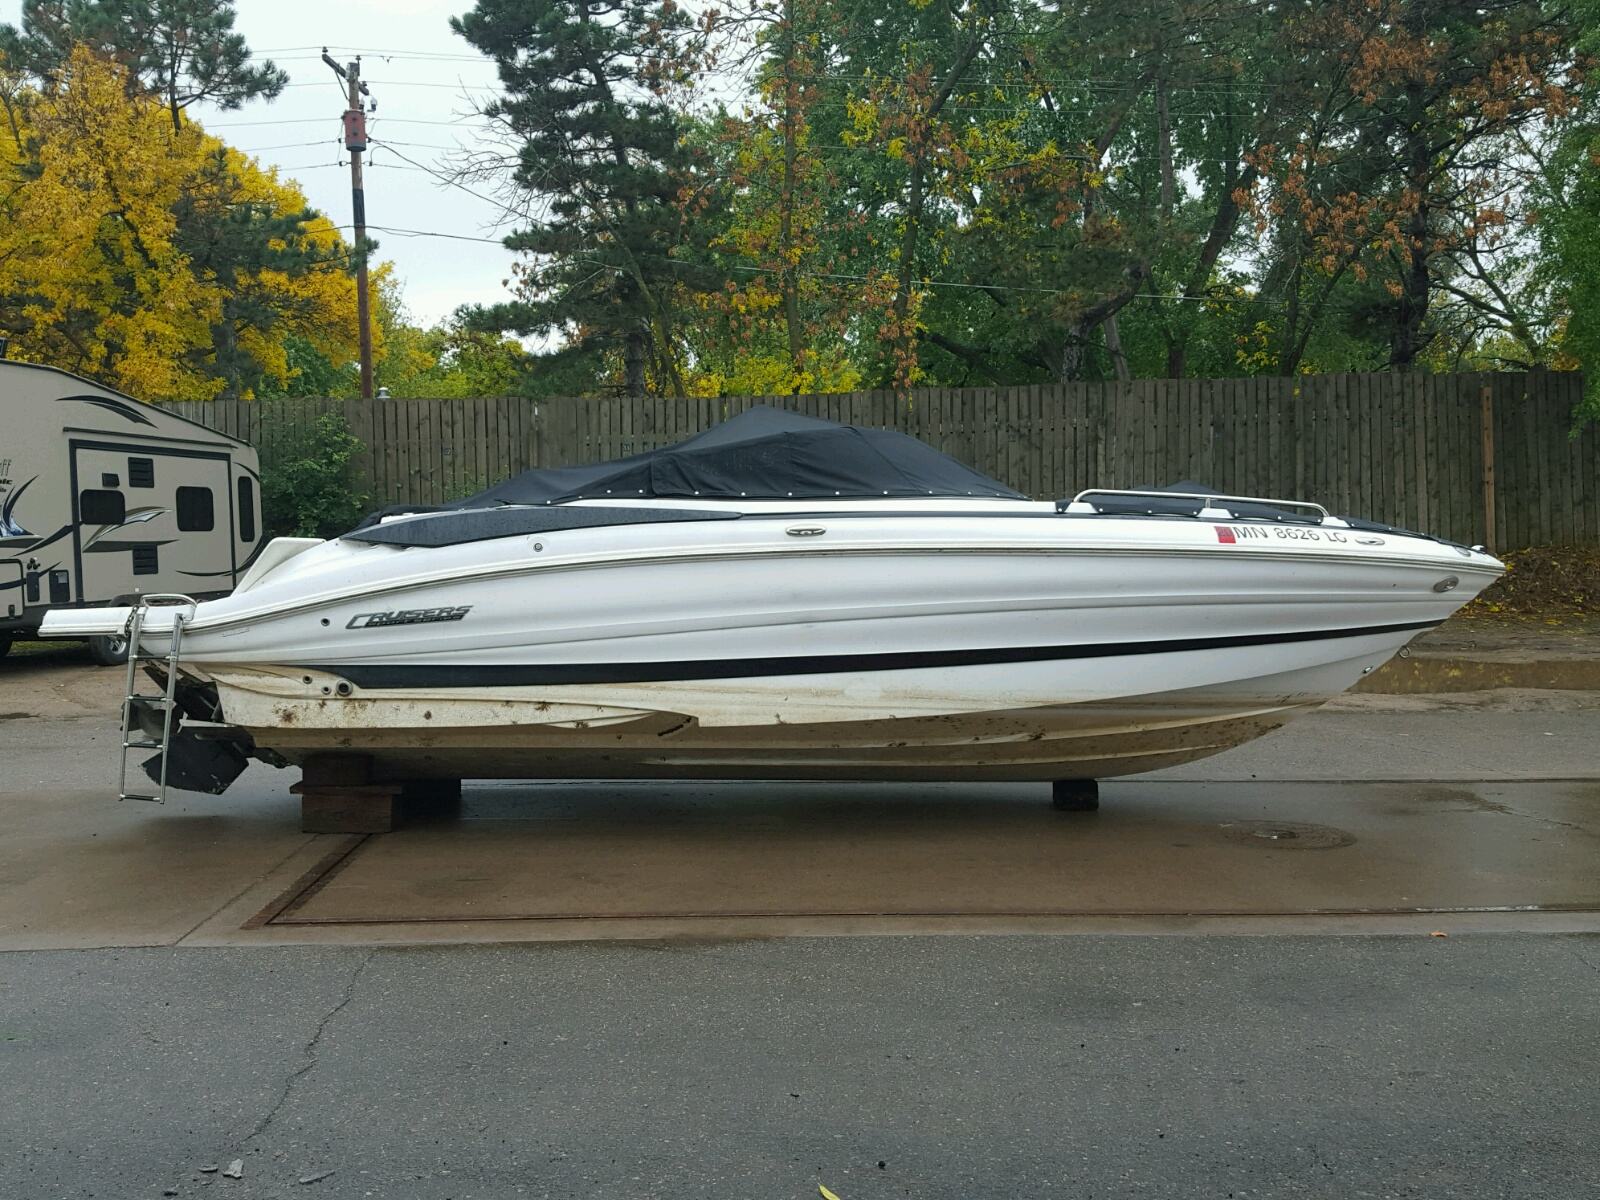 Salvage 2015 Cruiser Rv SPORT SERI for sale